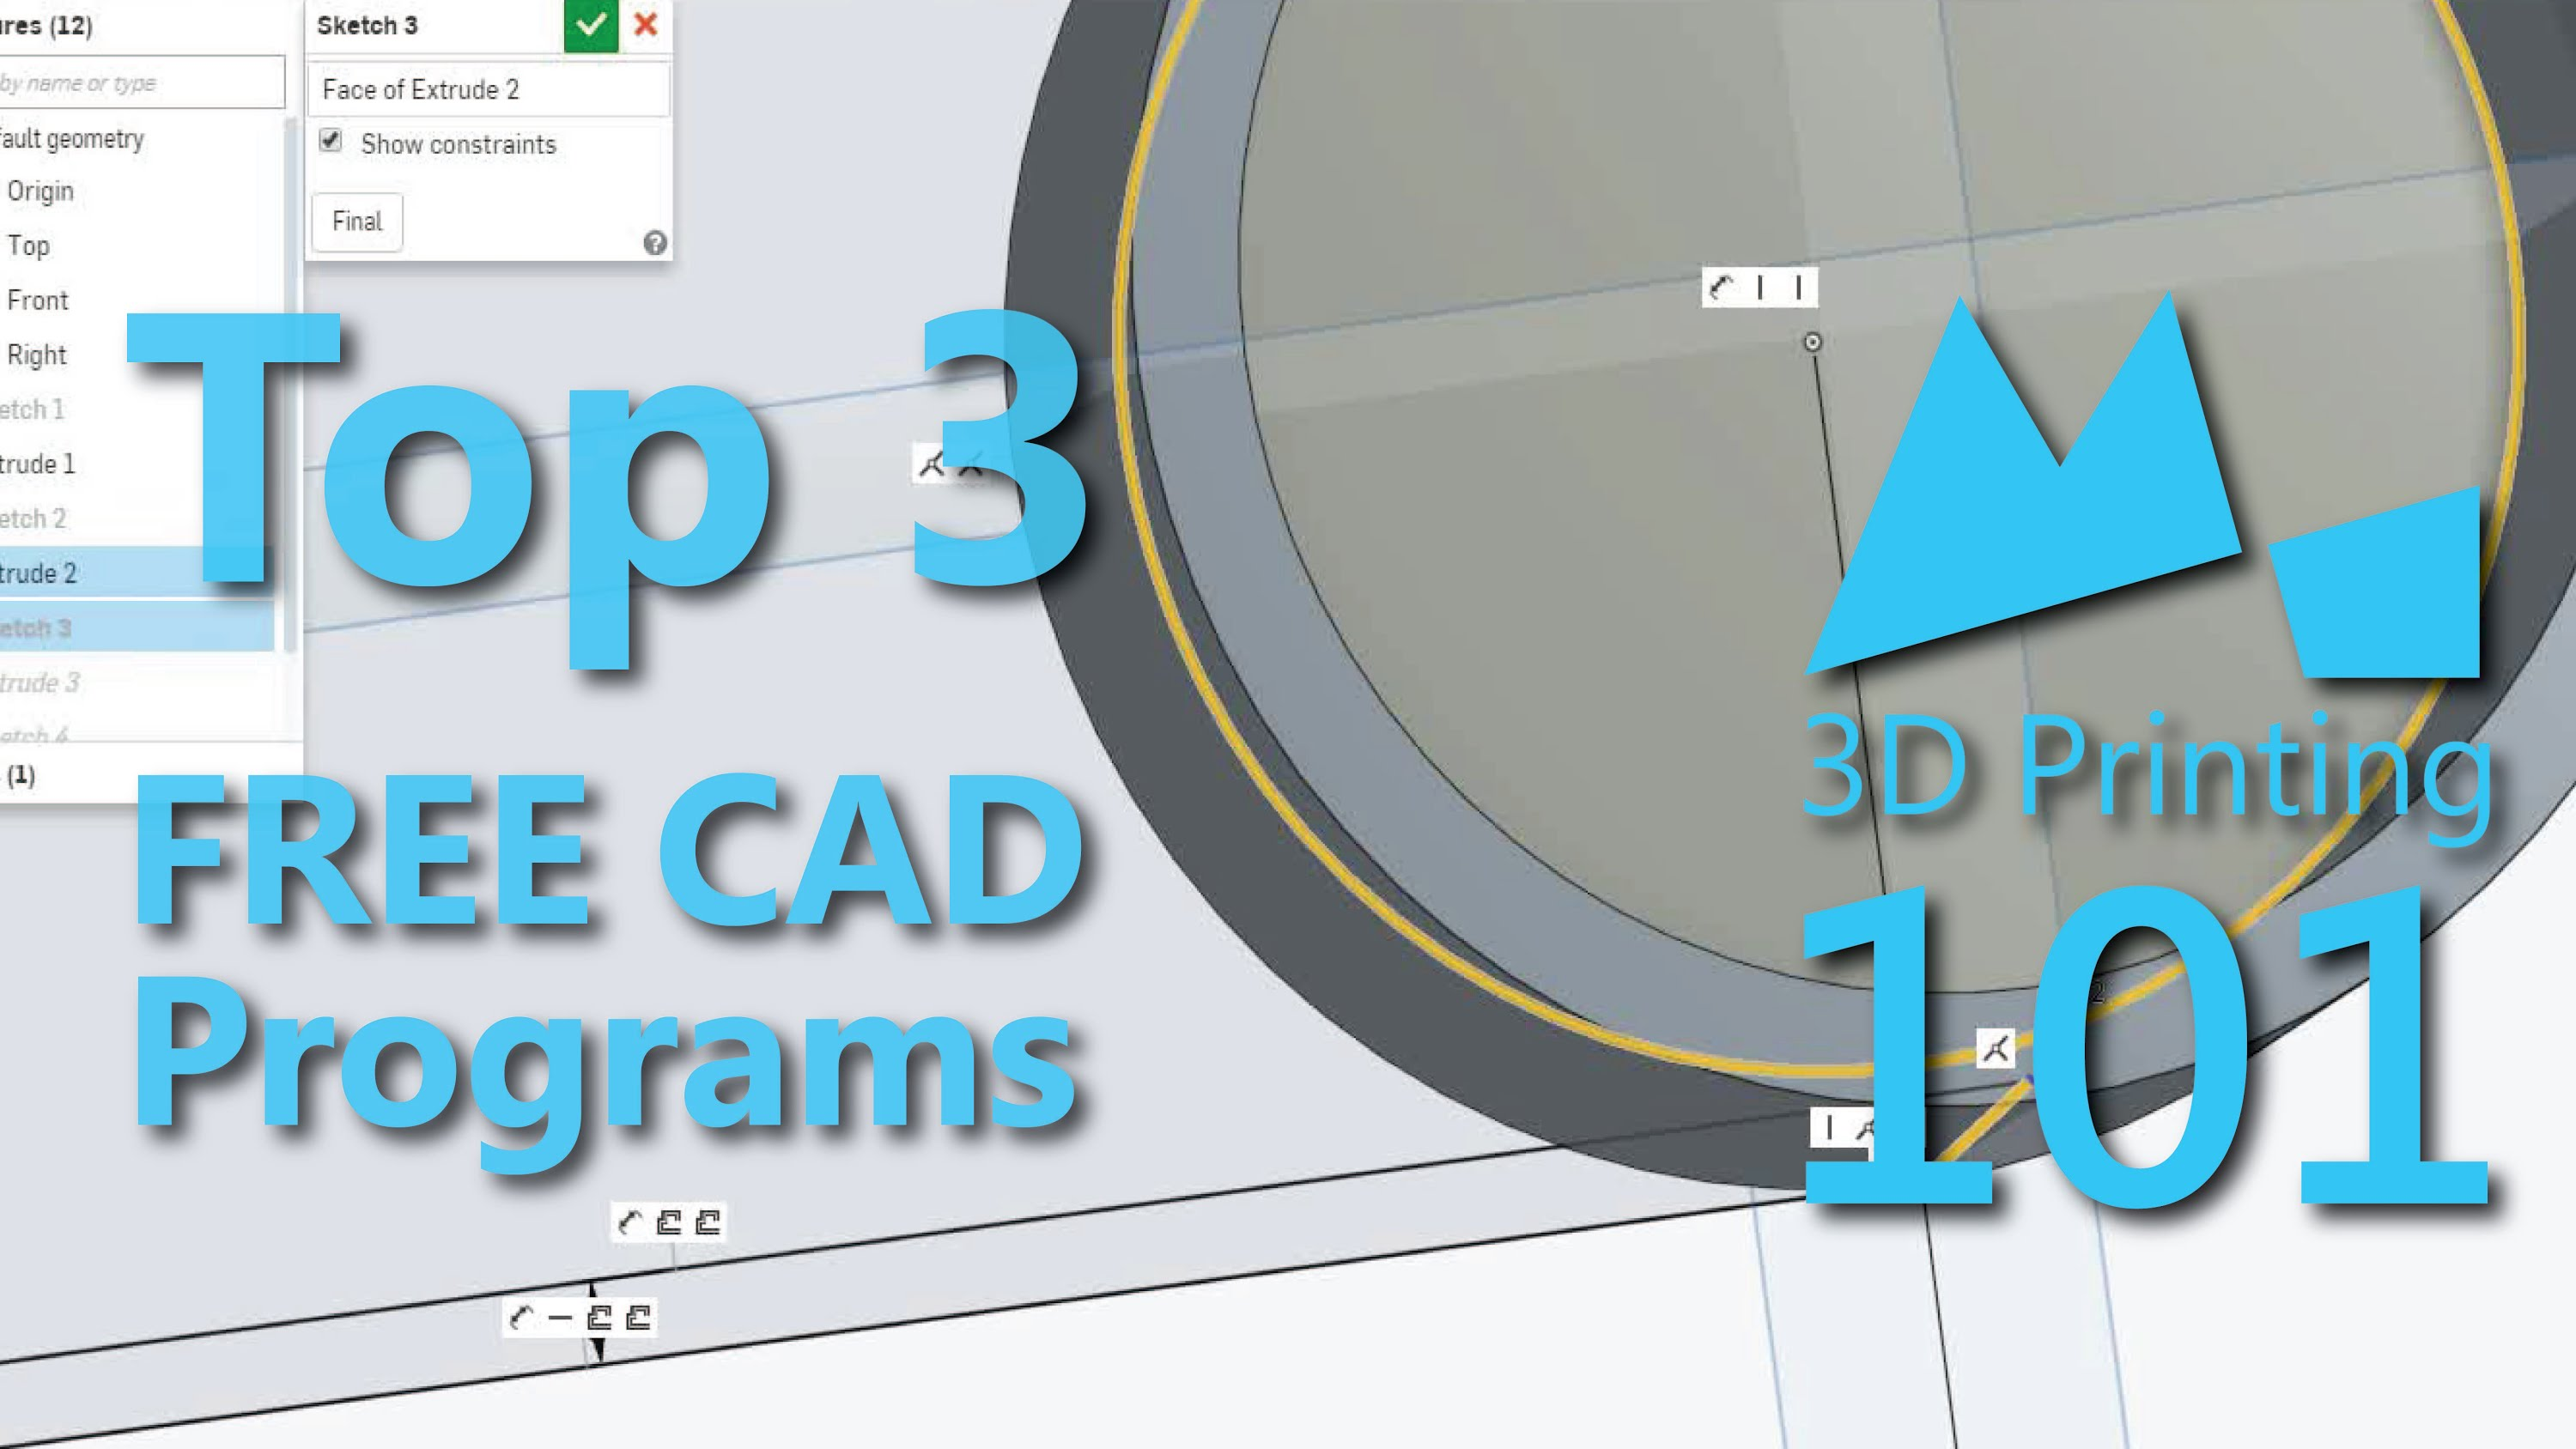 Top 3 free cad for 3dprinting adafruit industries for Online cad drawing software